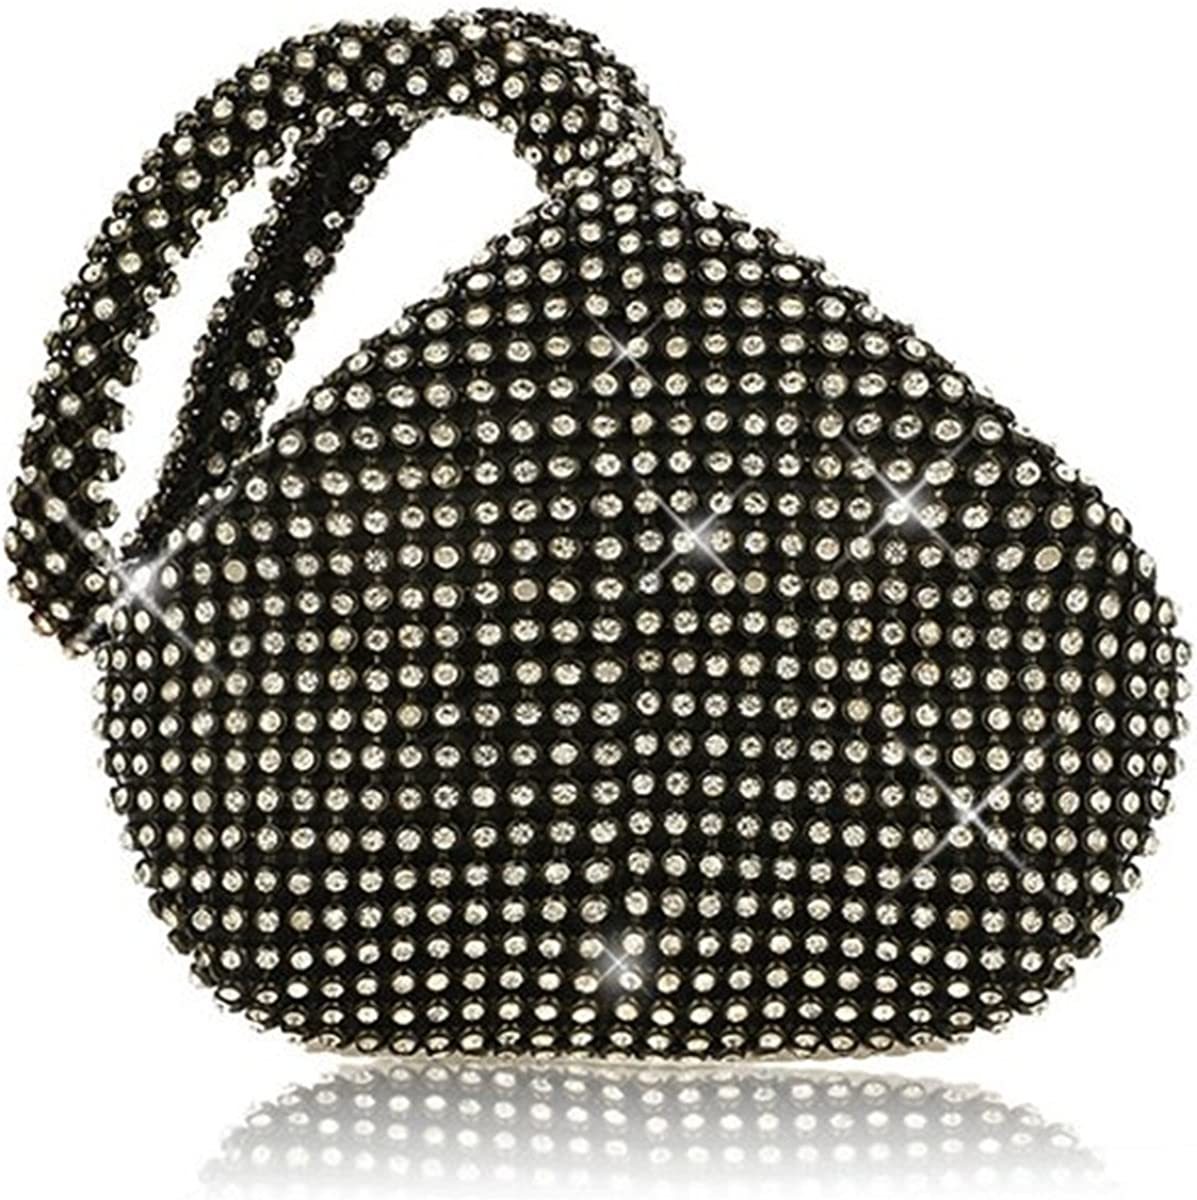 1920s Style Purses, Flapper Bags, Handbags Mogor Womens Triangle Bling Glitter Purse Crown Box Clutch Evening Luxury Bags Party Prom  AT vintagedancer.com